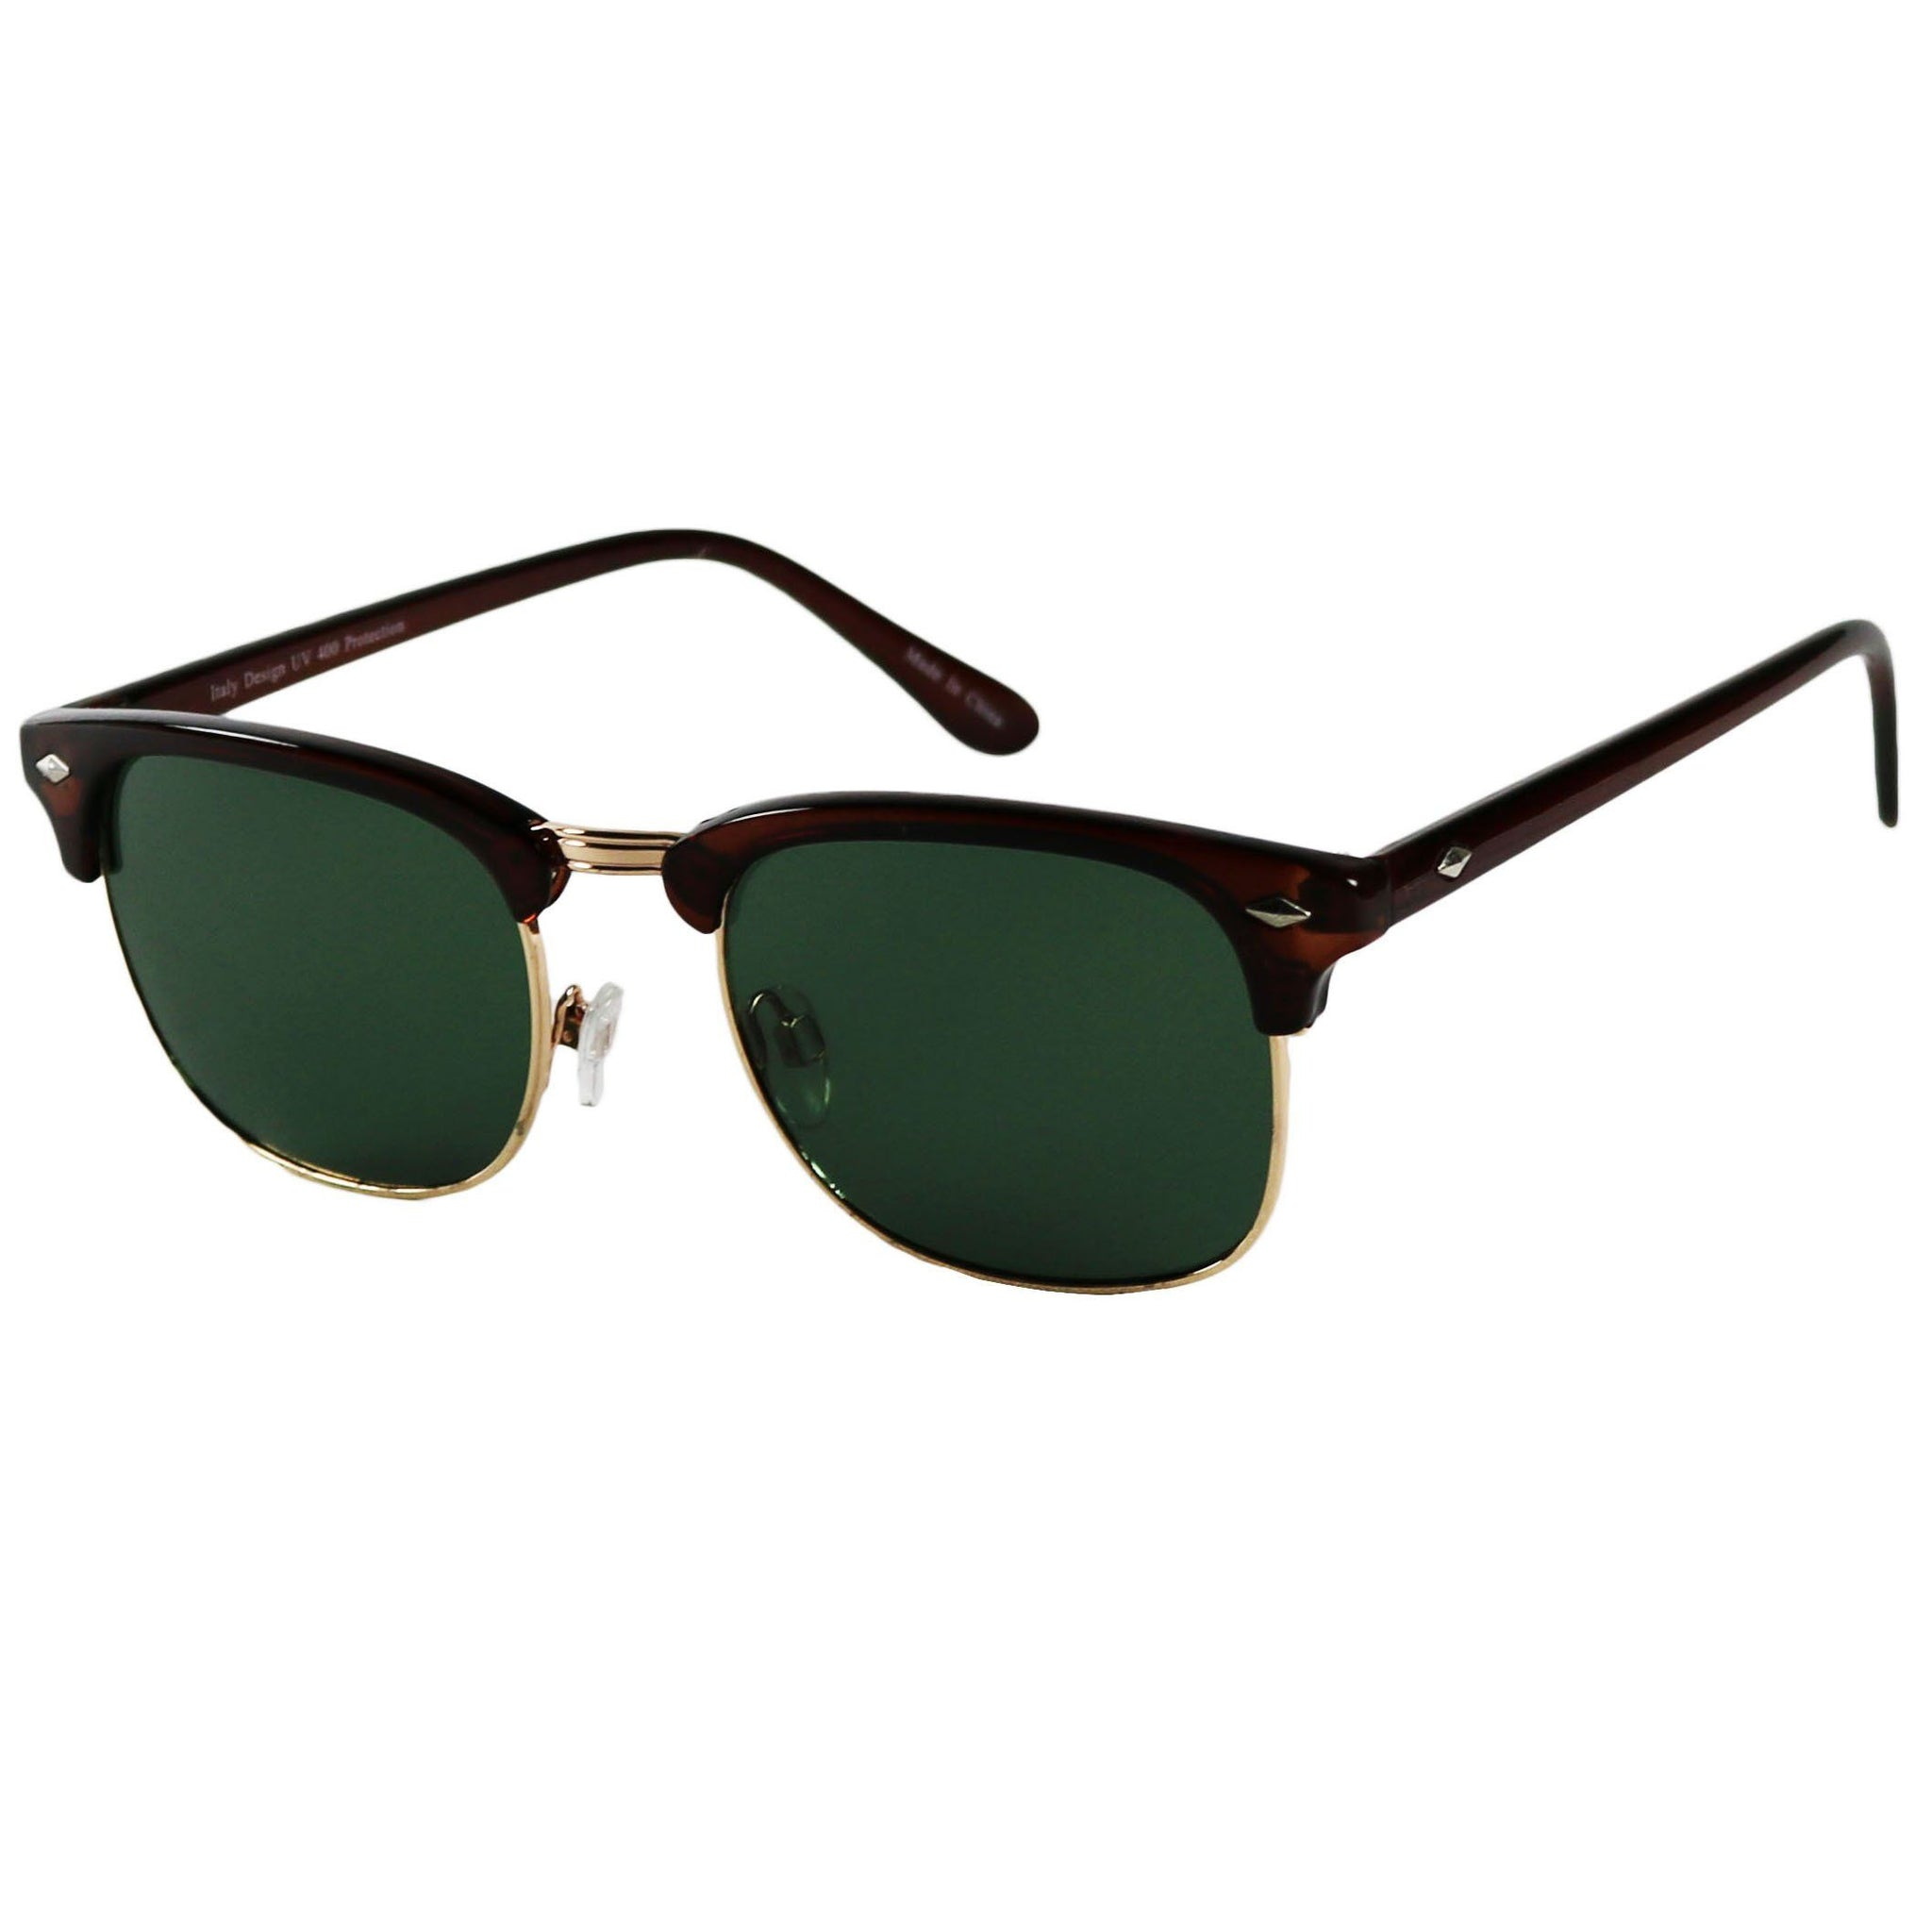 JOHN Casual Glass Lens Retro Half Semi Horned Rim 80's Classic Sunglasses - ShadyVEU